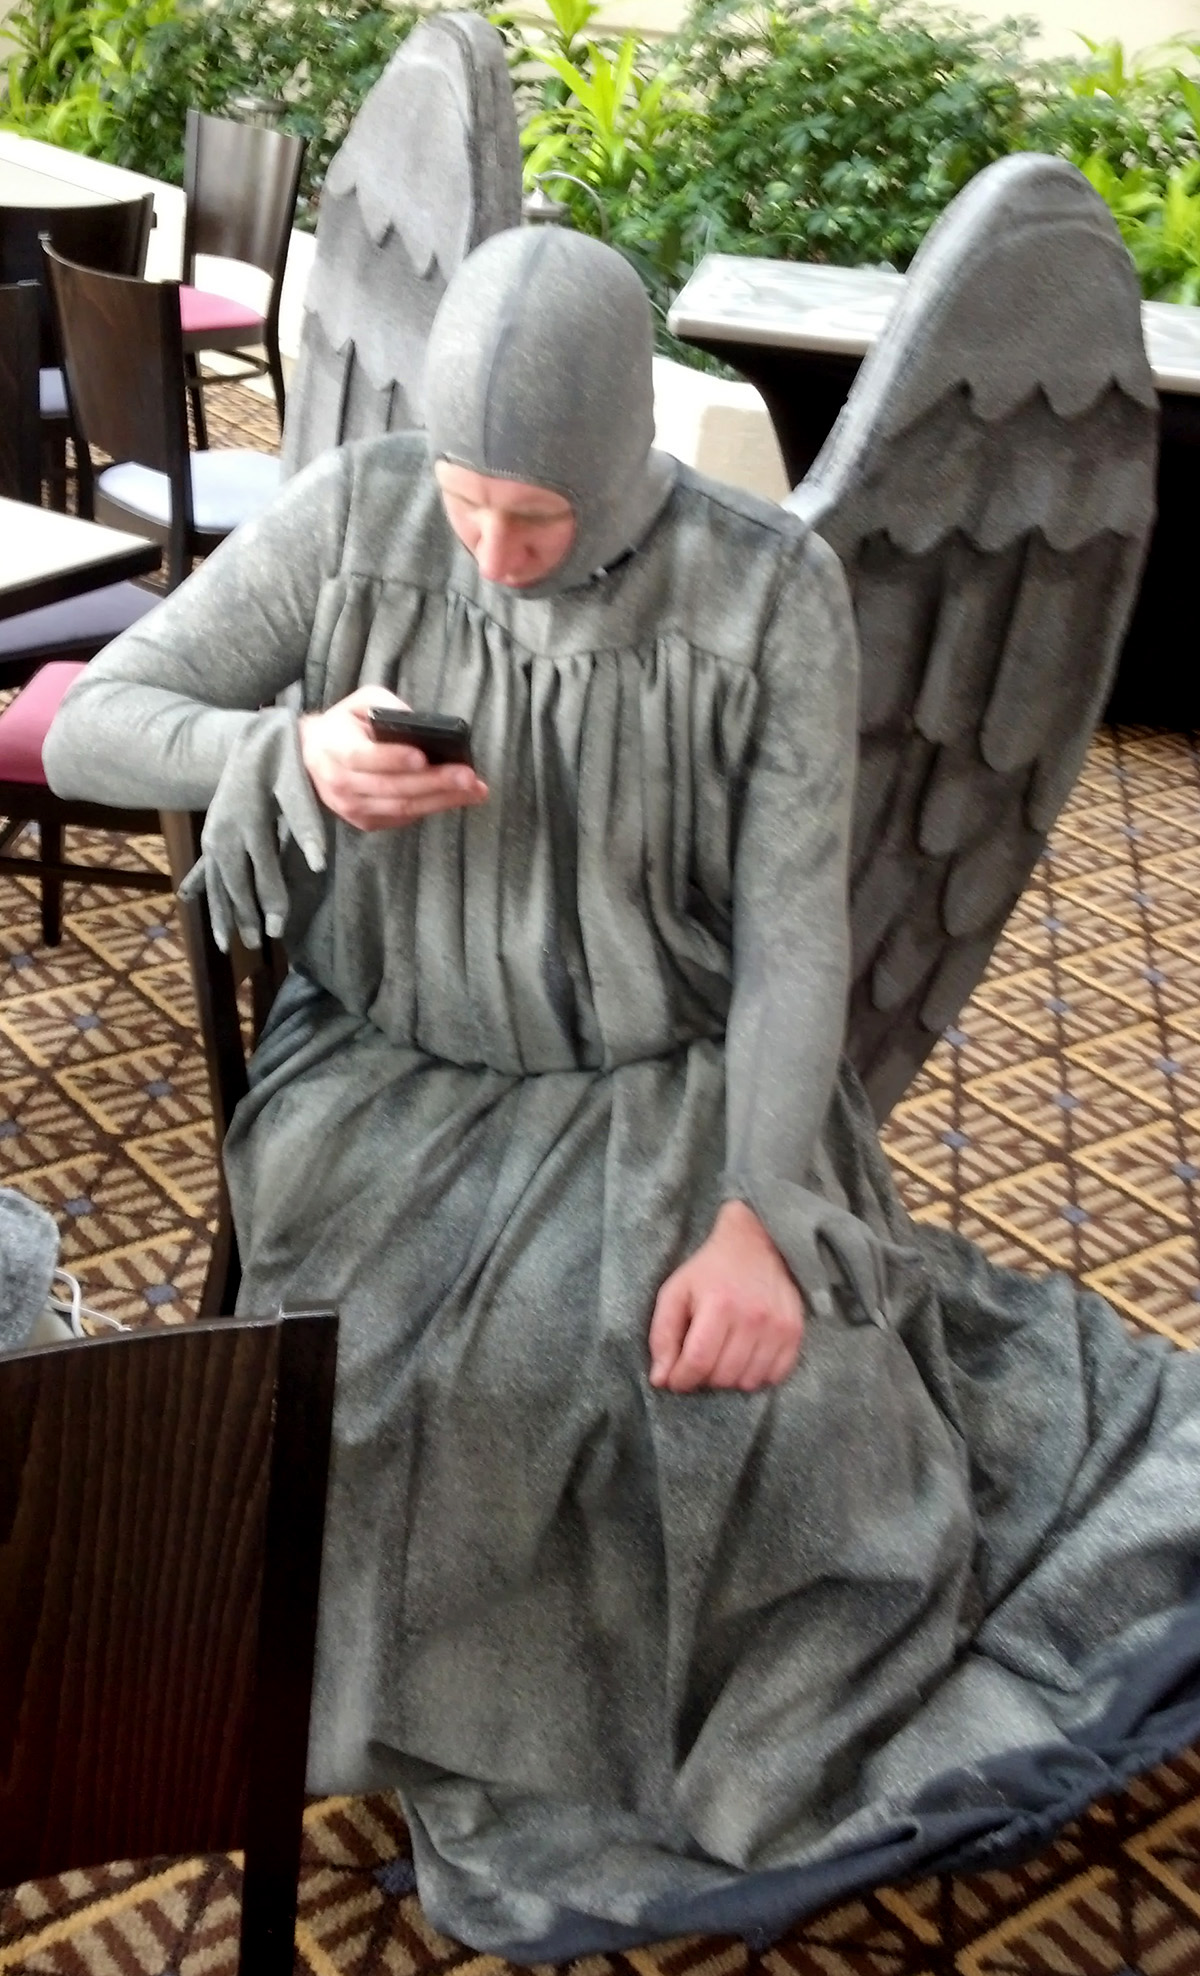 A person dressed as a weeping angel. His mask is off and he is checking a phone.